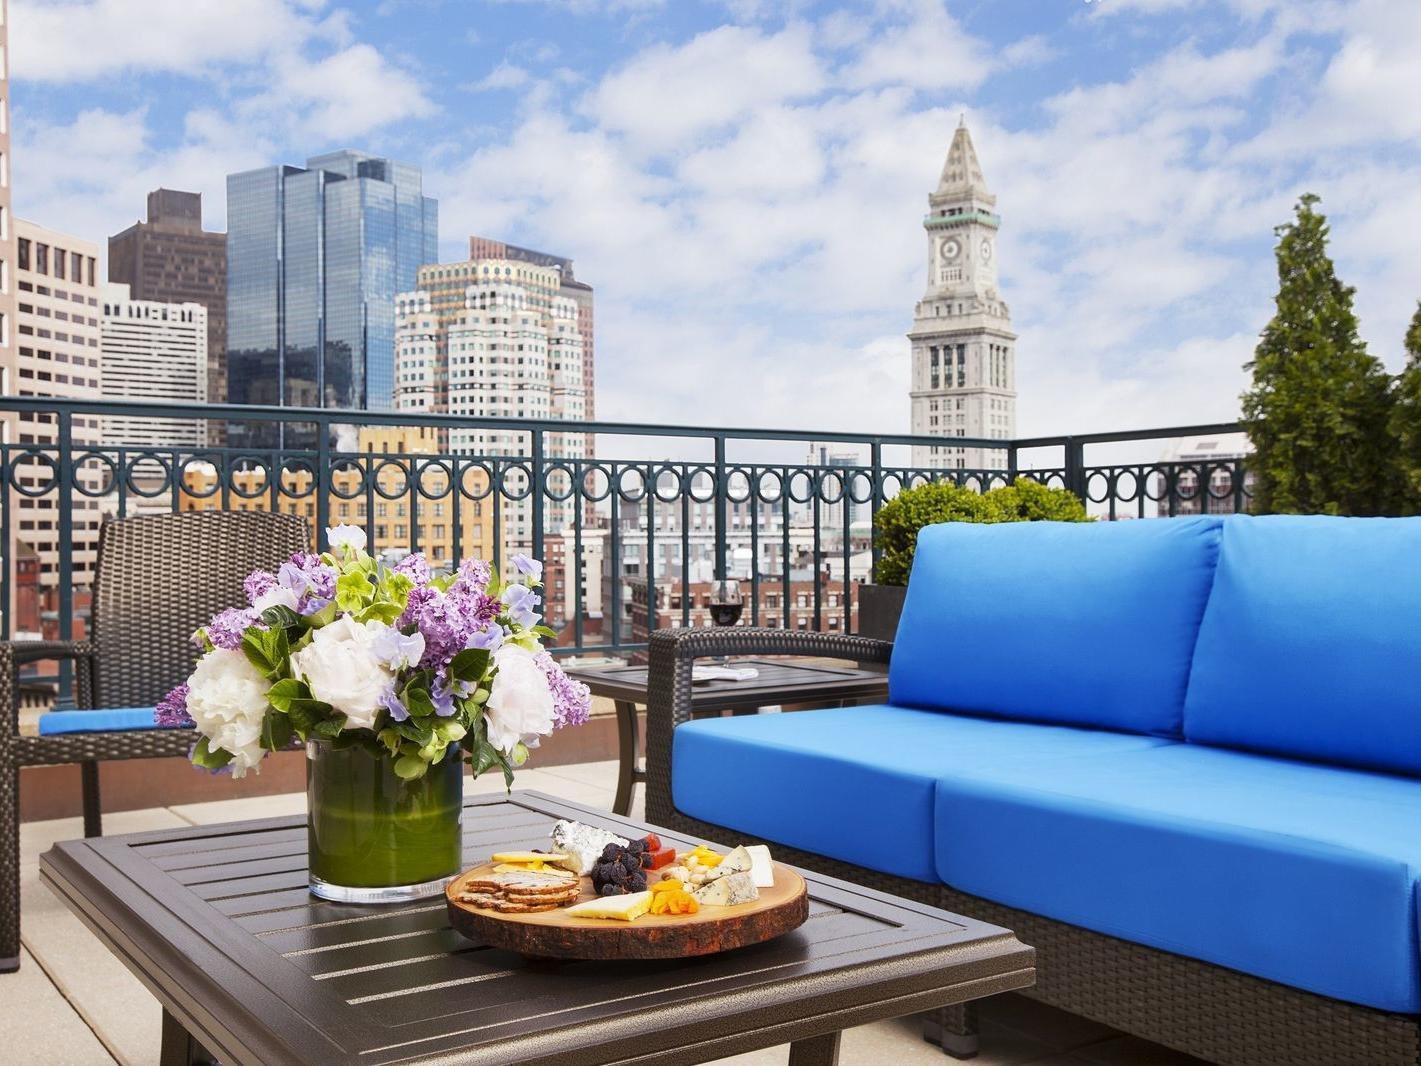 Floral arrangement on patio table with city skyline view